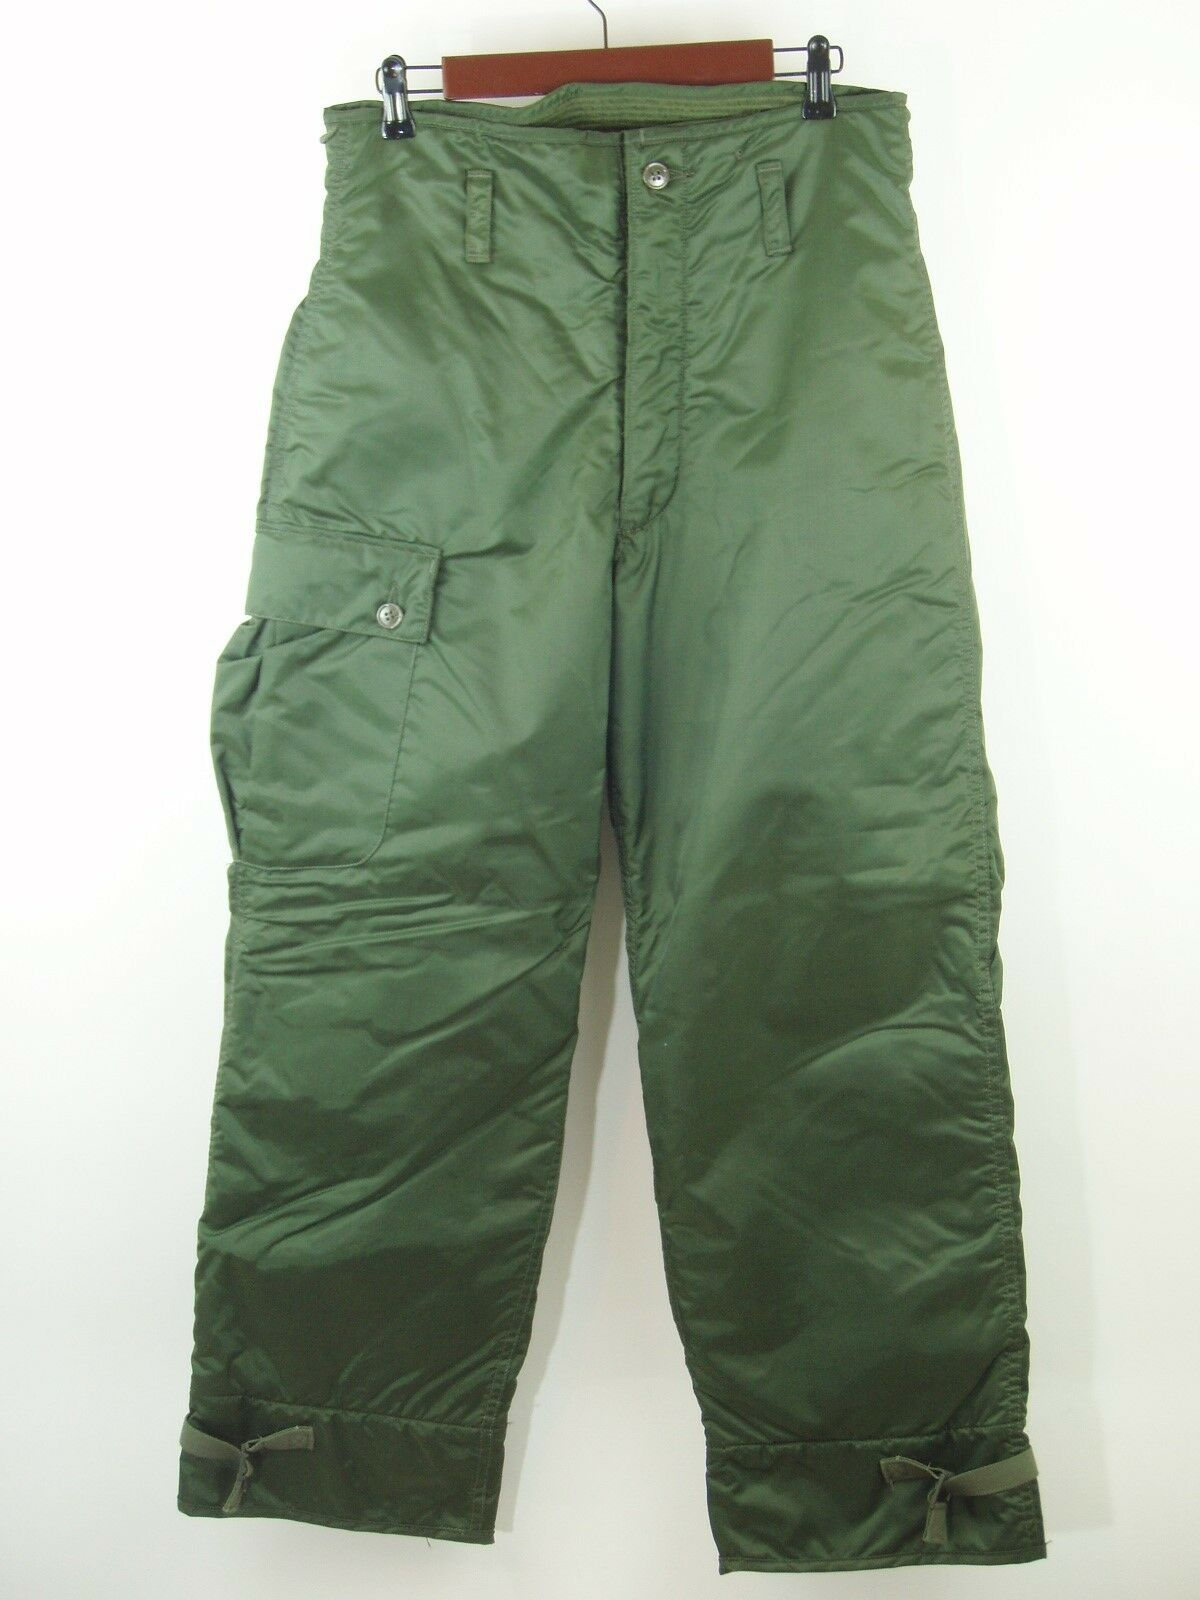 Military Extreme Cold Trousers Snow Pants  Size Small 27-30 Weather IMPERMEABLE  100% brand new with original quality